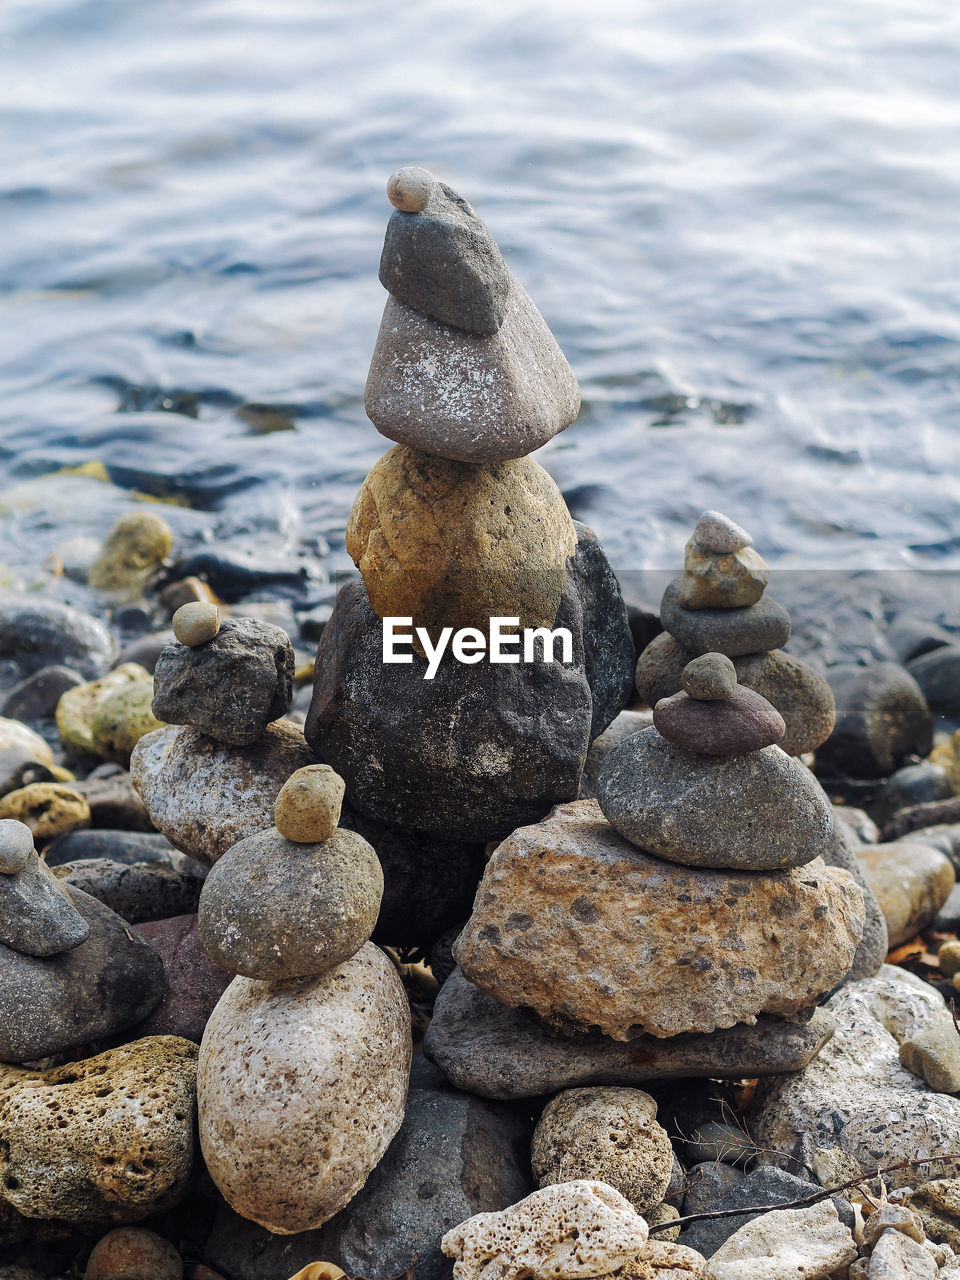 solid, rock, stone - object, water, balance, rock - object, zen-like, stack, no people, nature, pebble, sea, day, stone, beach, land, beauty in nature, tranquility, textured, outdoors, flowing water, marine